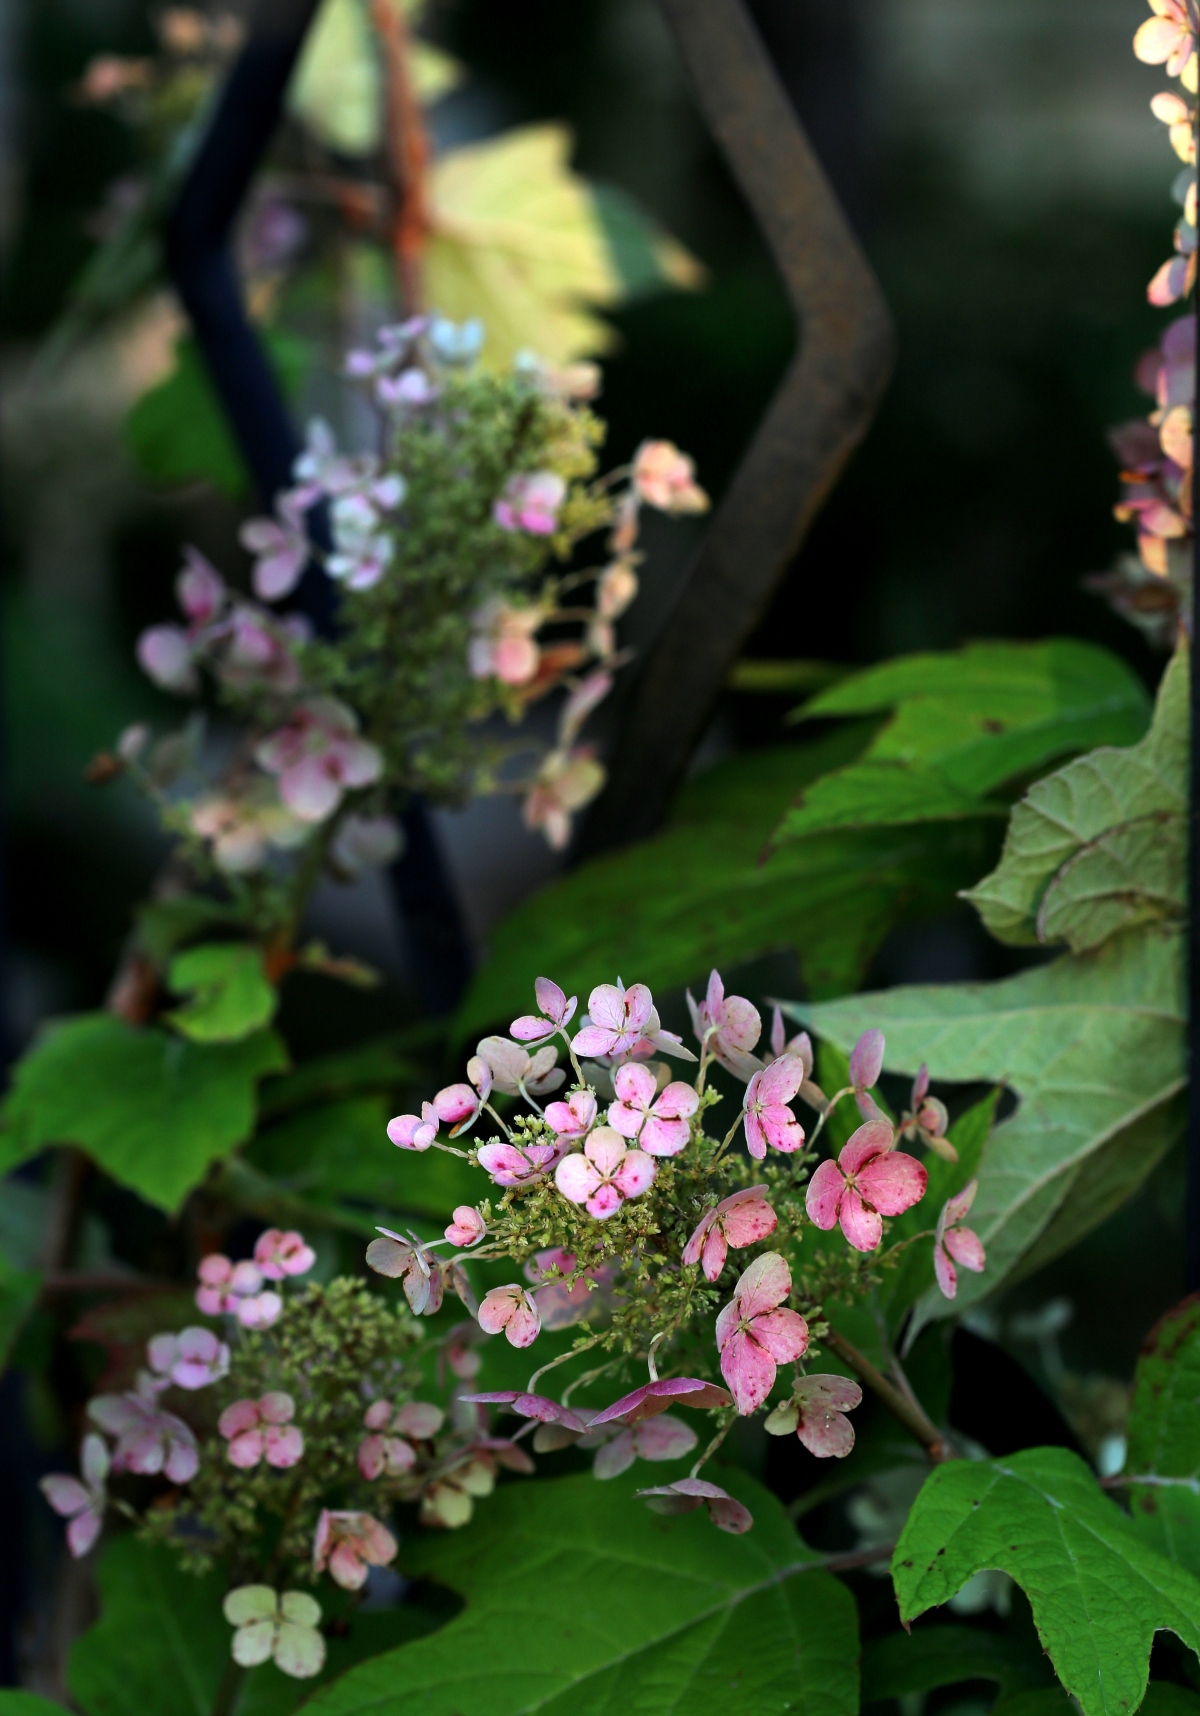 Photography ~ Backyard Landscaping–A Trellis & Oakleaf Hydrangea, 05/27